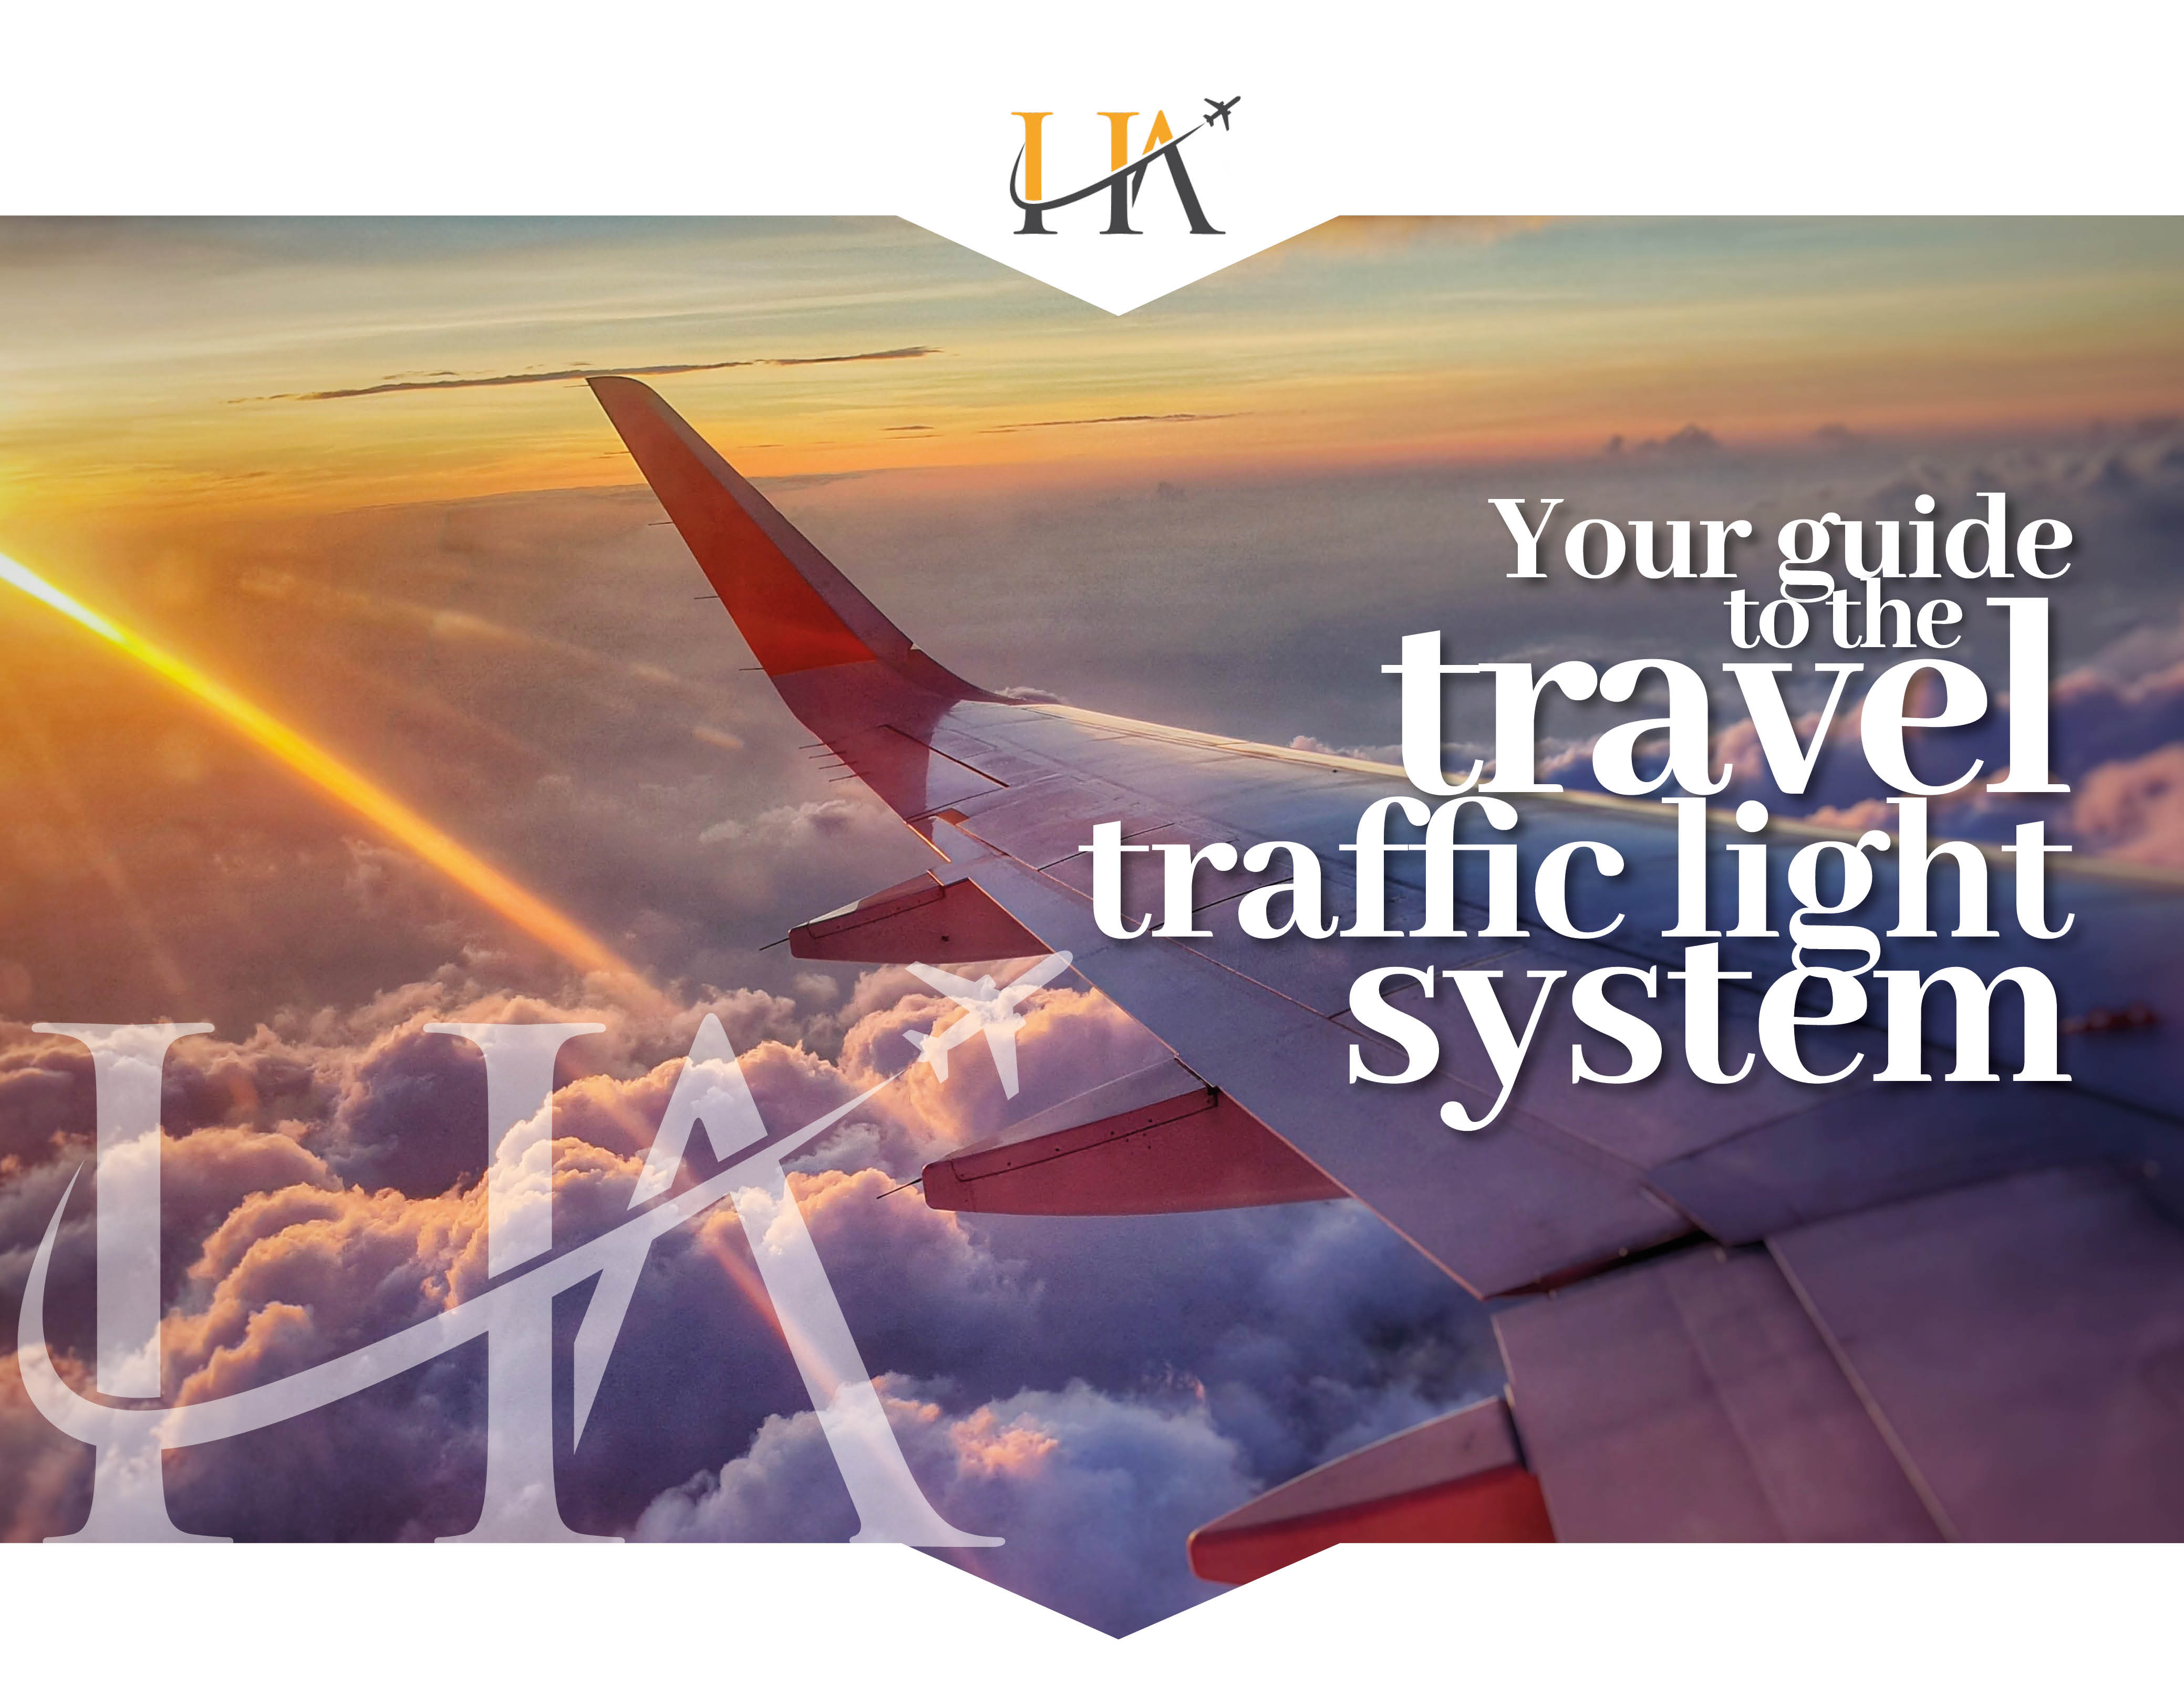 Your guide to the Traffic light system_header build